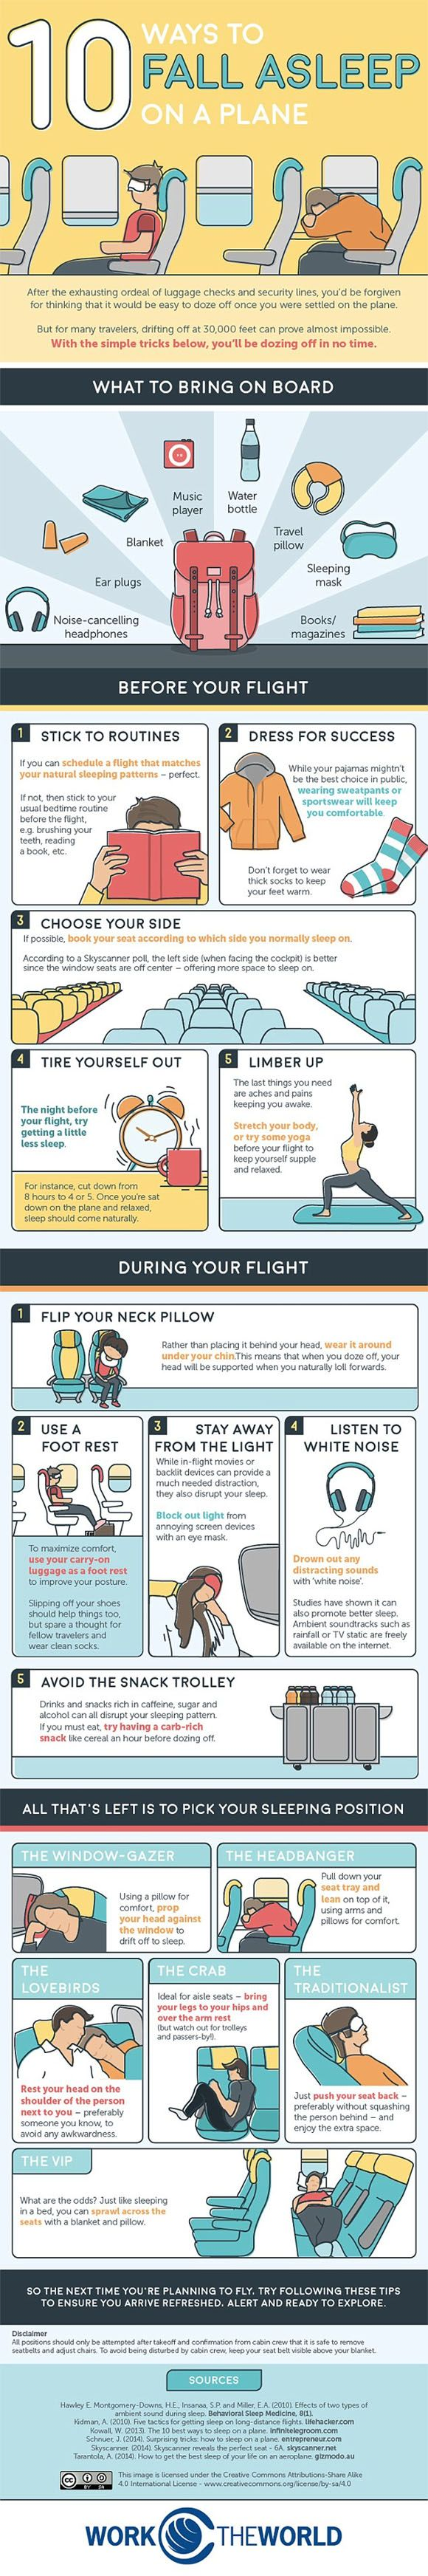 DREAM ON: How to fall asleep on a plane